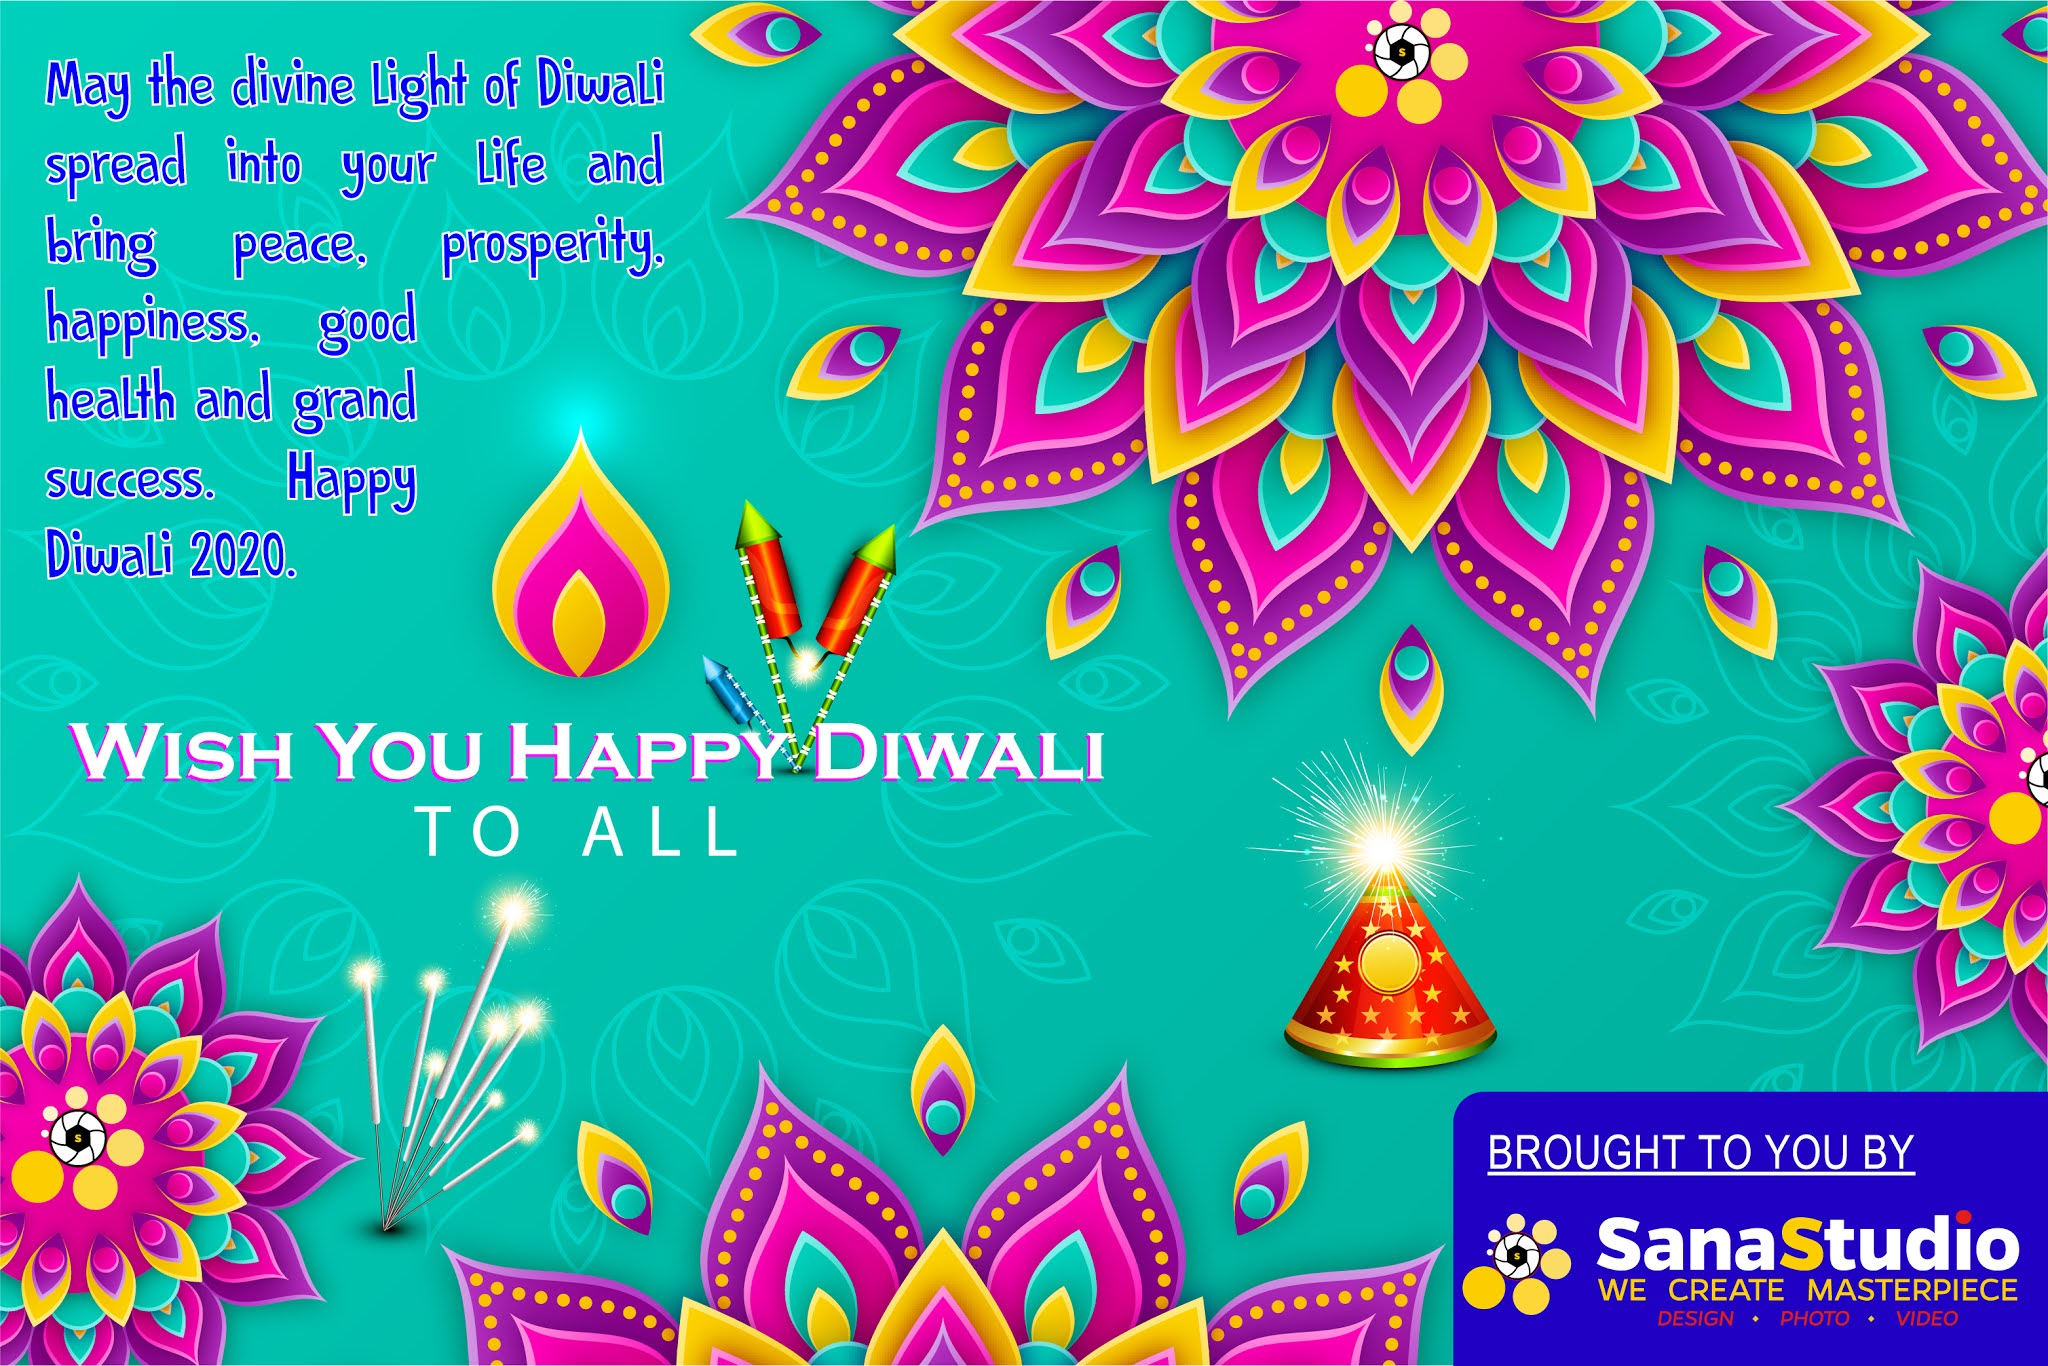 Sana Studio Wishing you a happy Diwali. We hope this Diwali be an awesome celebration for you and you be blessed with wealth and success always.💐💐🎁🎇🎆💥